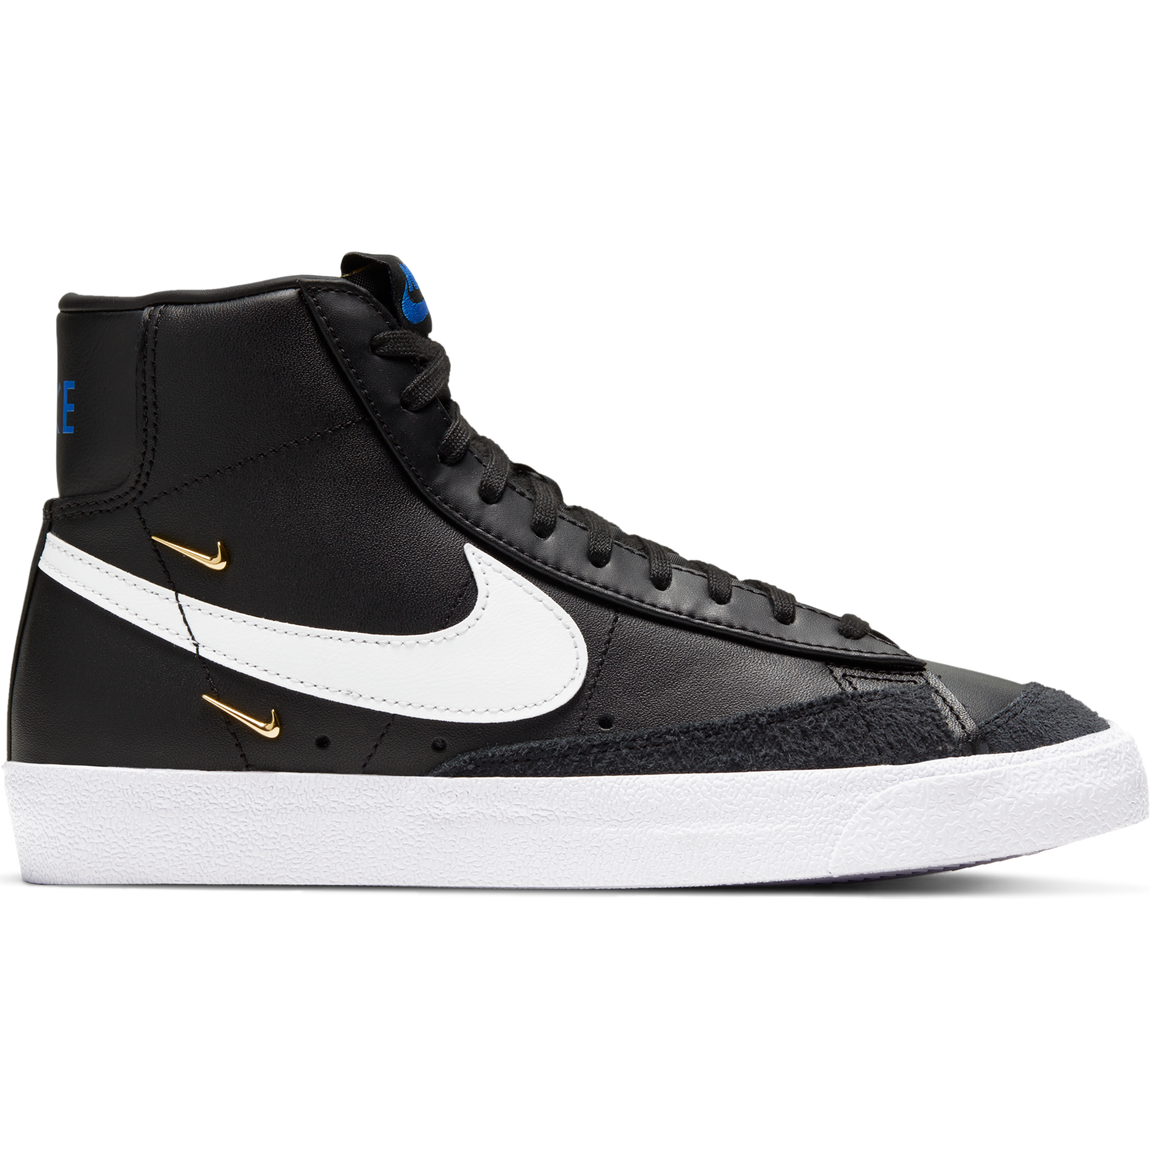 Nike Women's Blazer Mid '77 SE (Black/White-Hyper Royal) - Nike Women's Blazer Mid '77 SE (Black/White-Hyper Royal) -